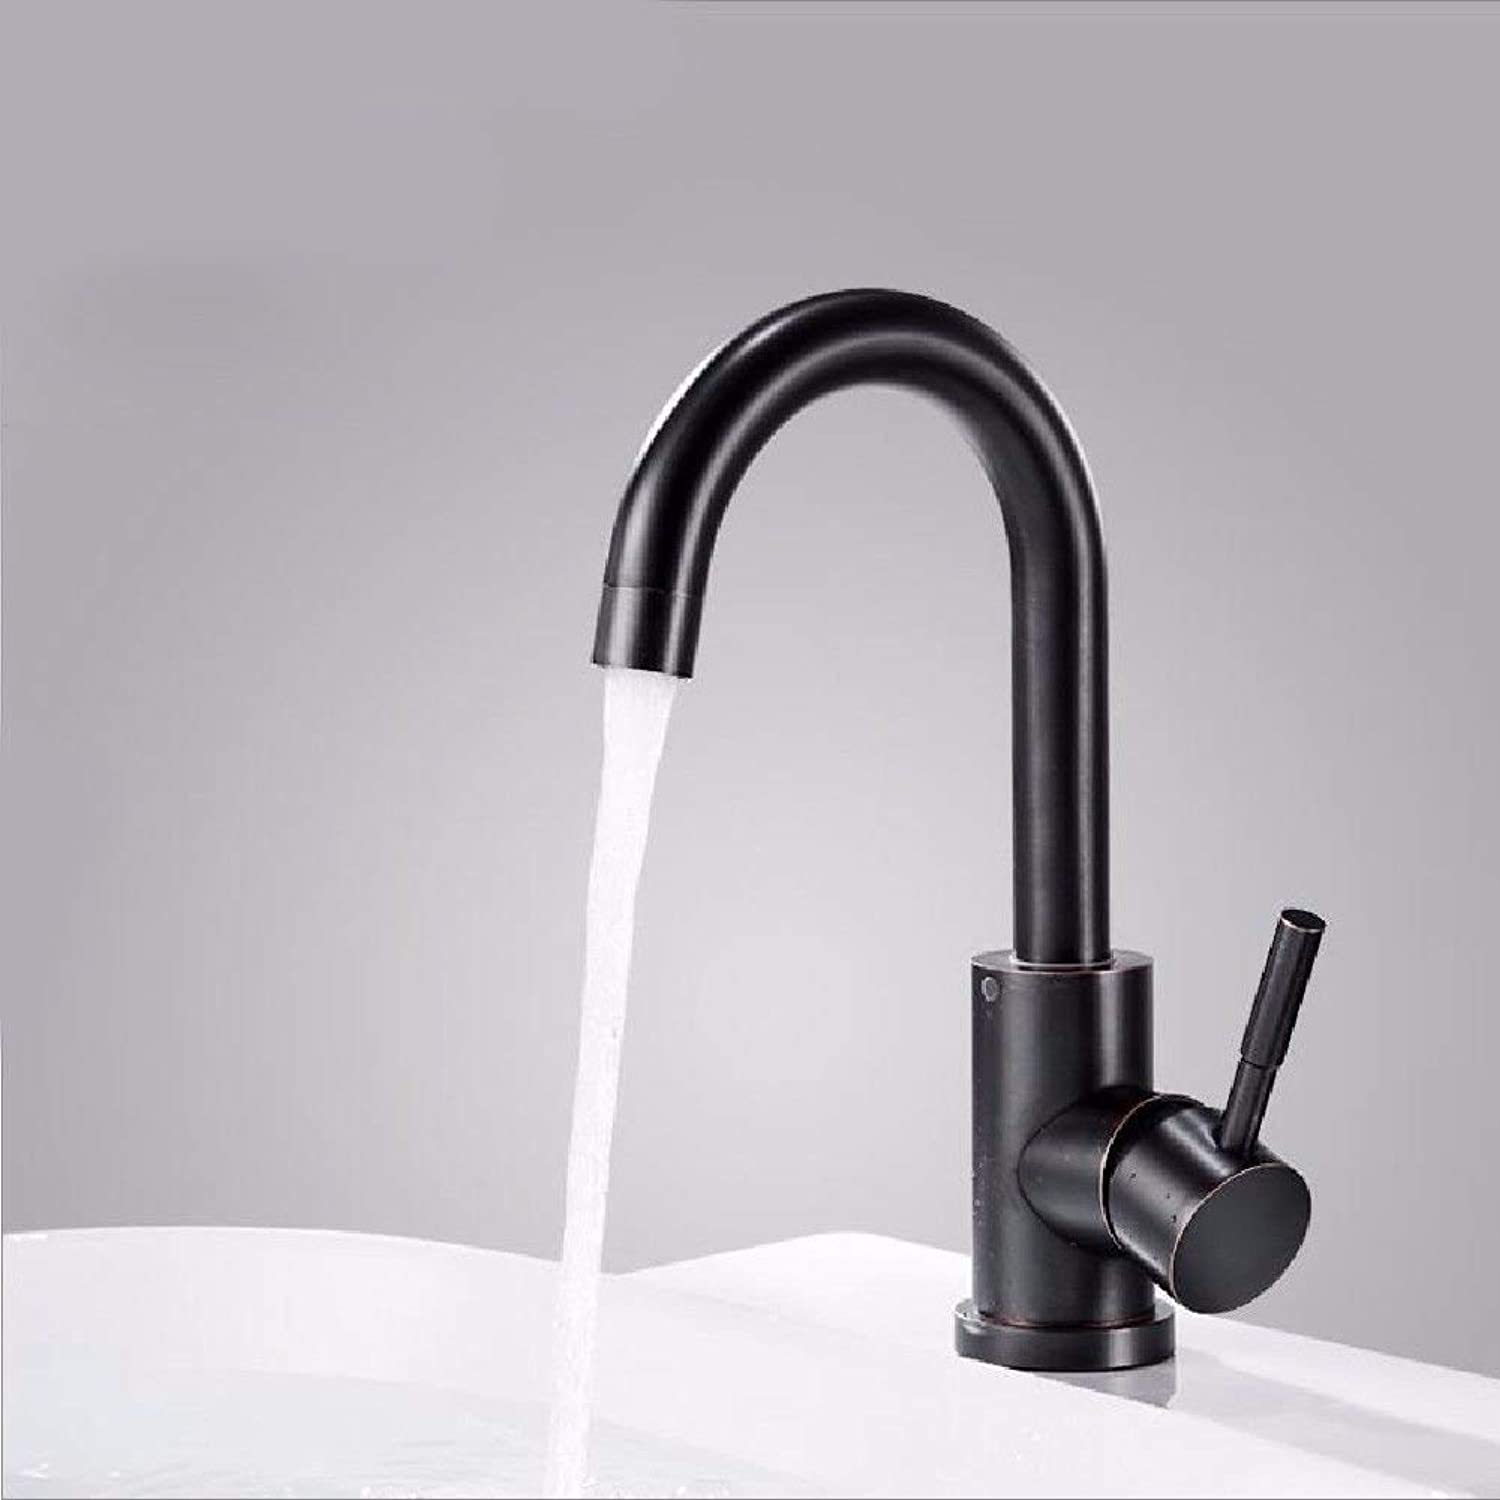 Oudan Basin Mixer Tap Bathroom Sink Faucet 304 stainless steel blackAntique can redate the hot and cold water faucets antique basin, B (color   B)